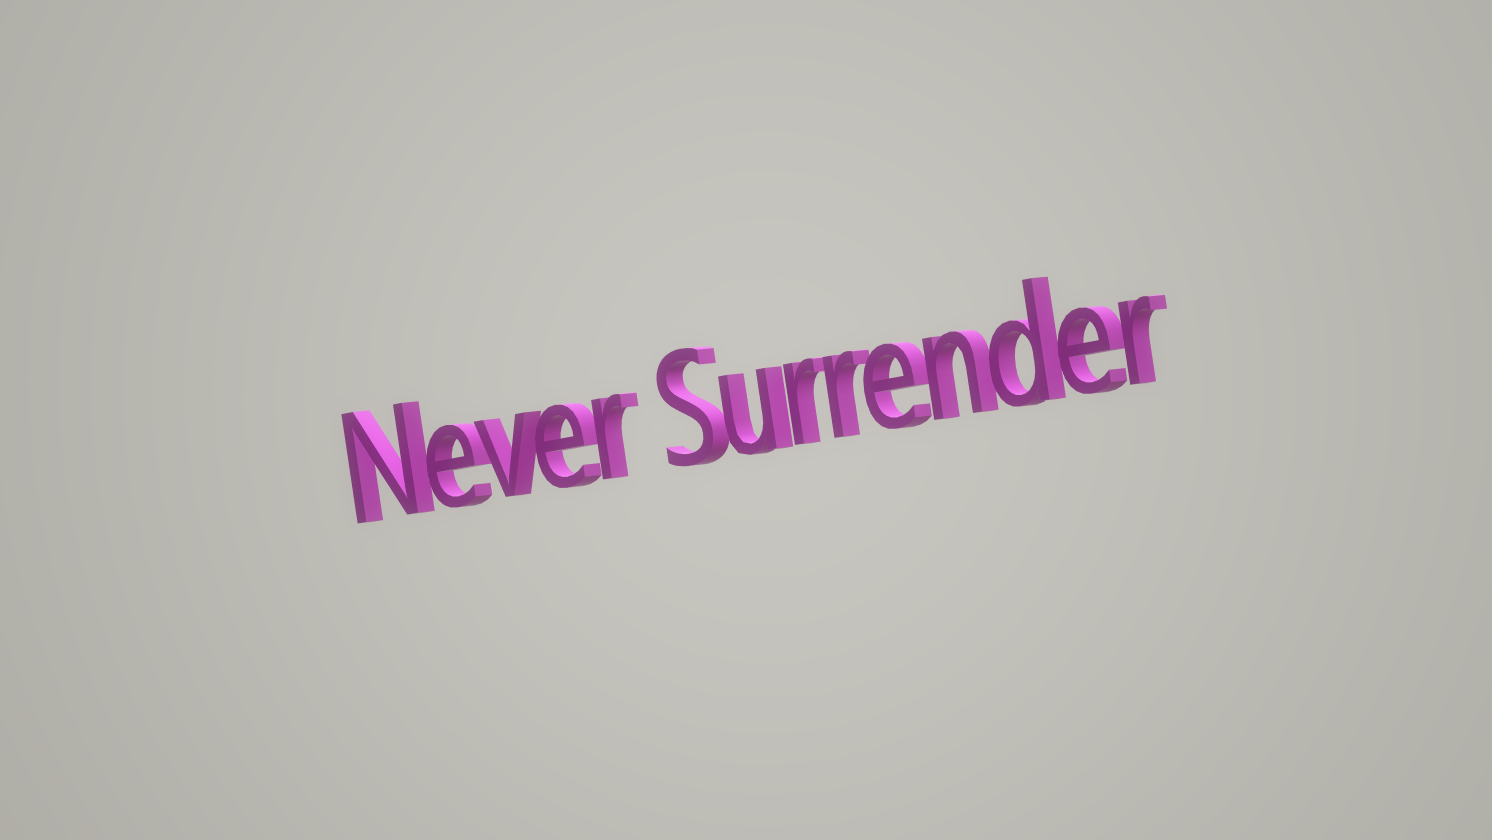 Never Surrender 3 7 (2).png